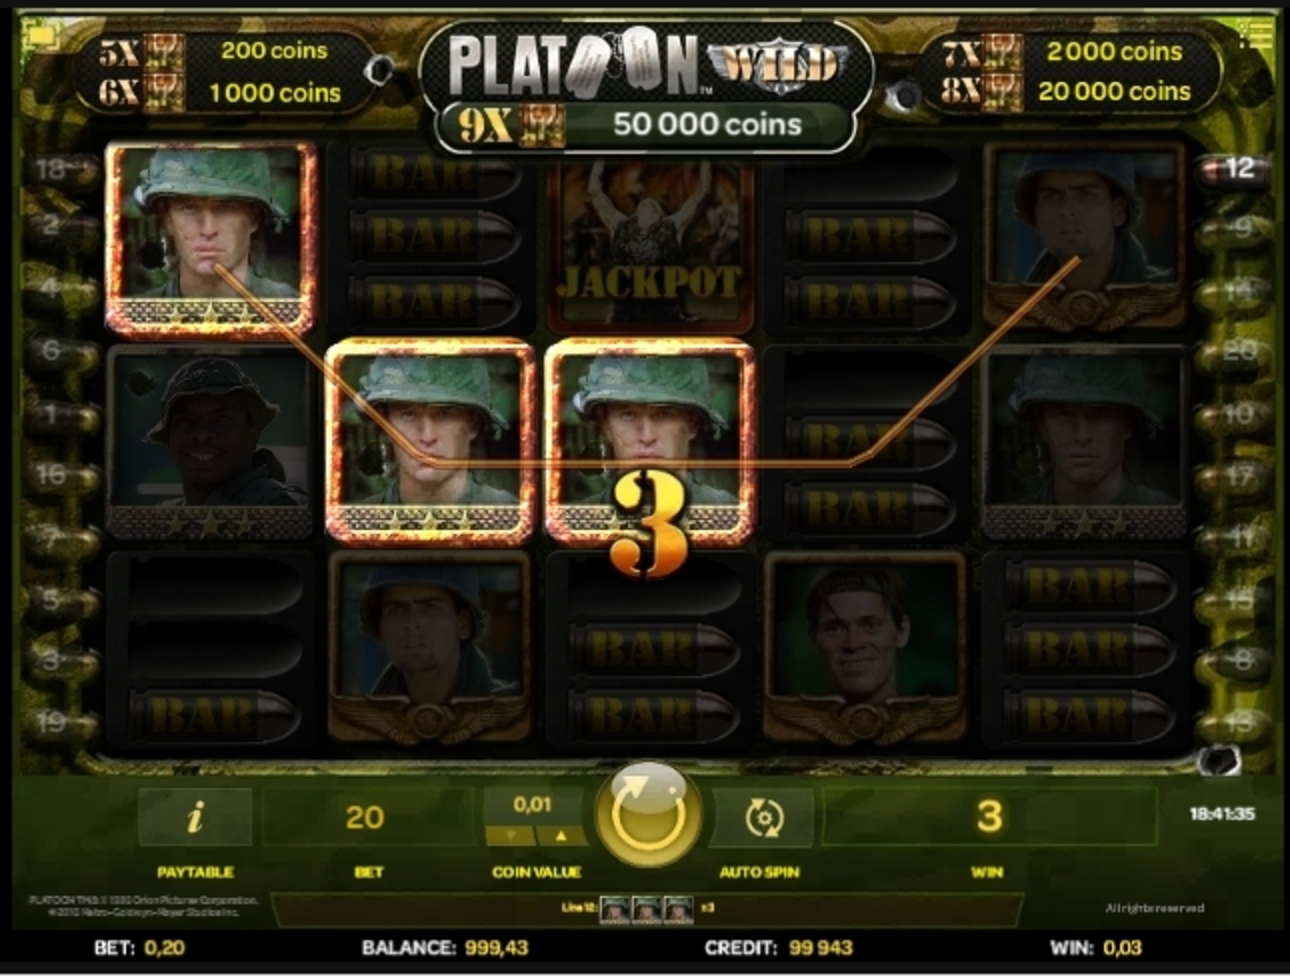 Win Money in Platoon Wild Free Slot Game by iSoftBet